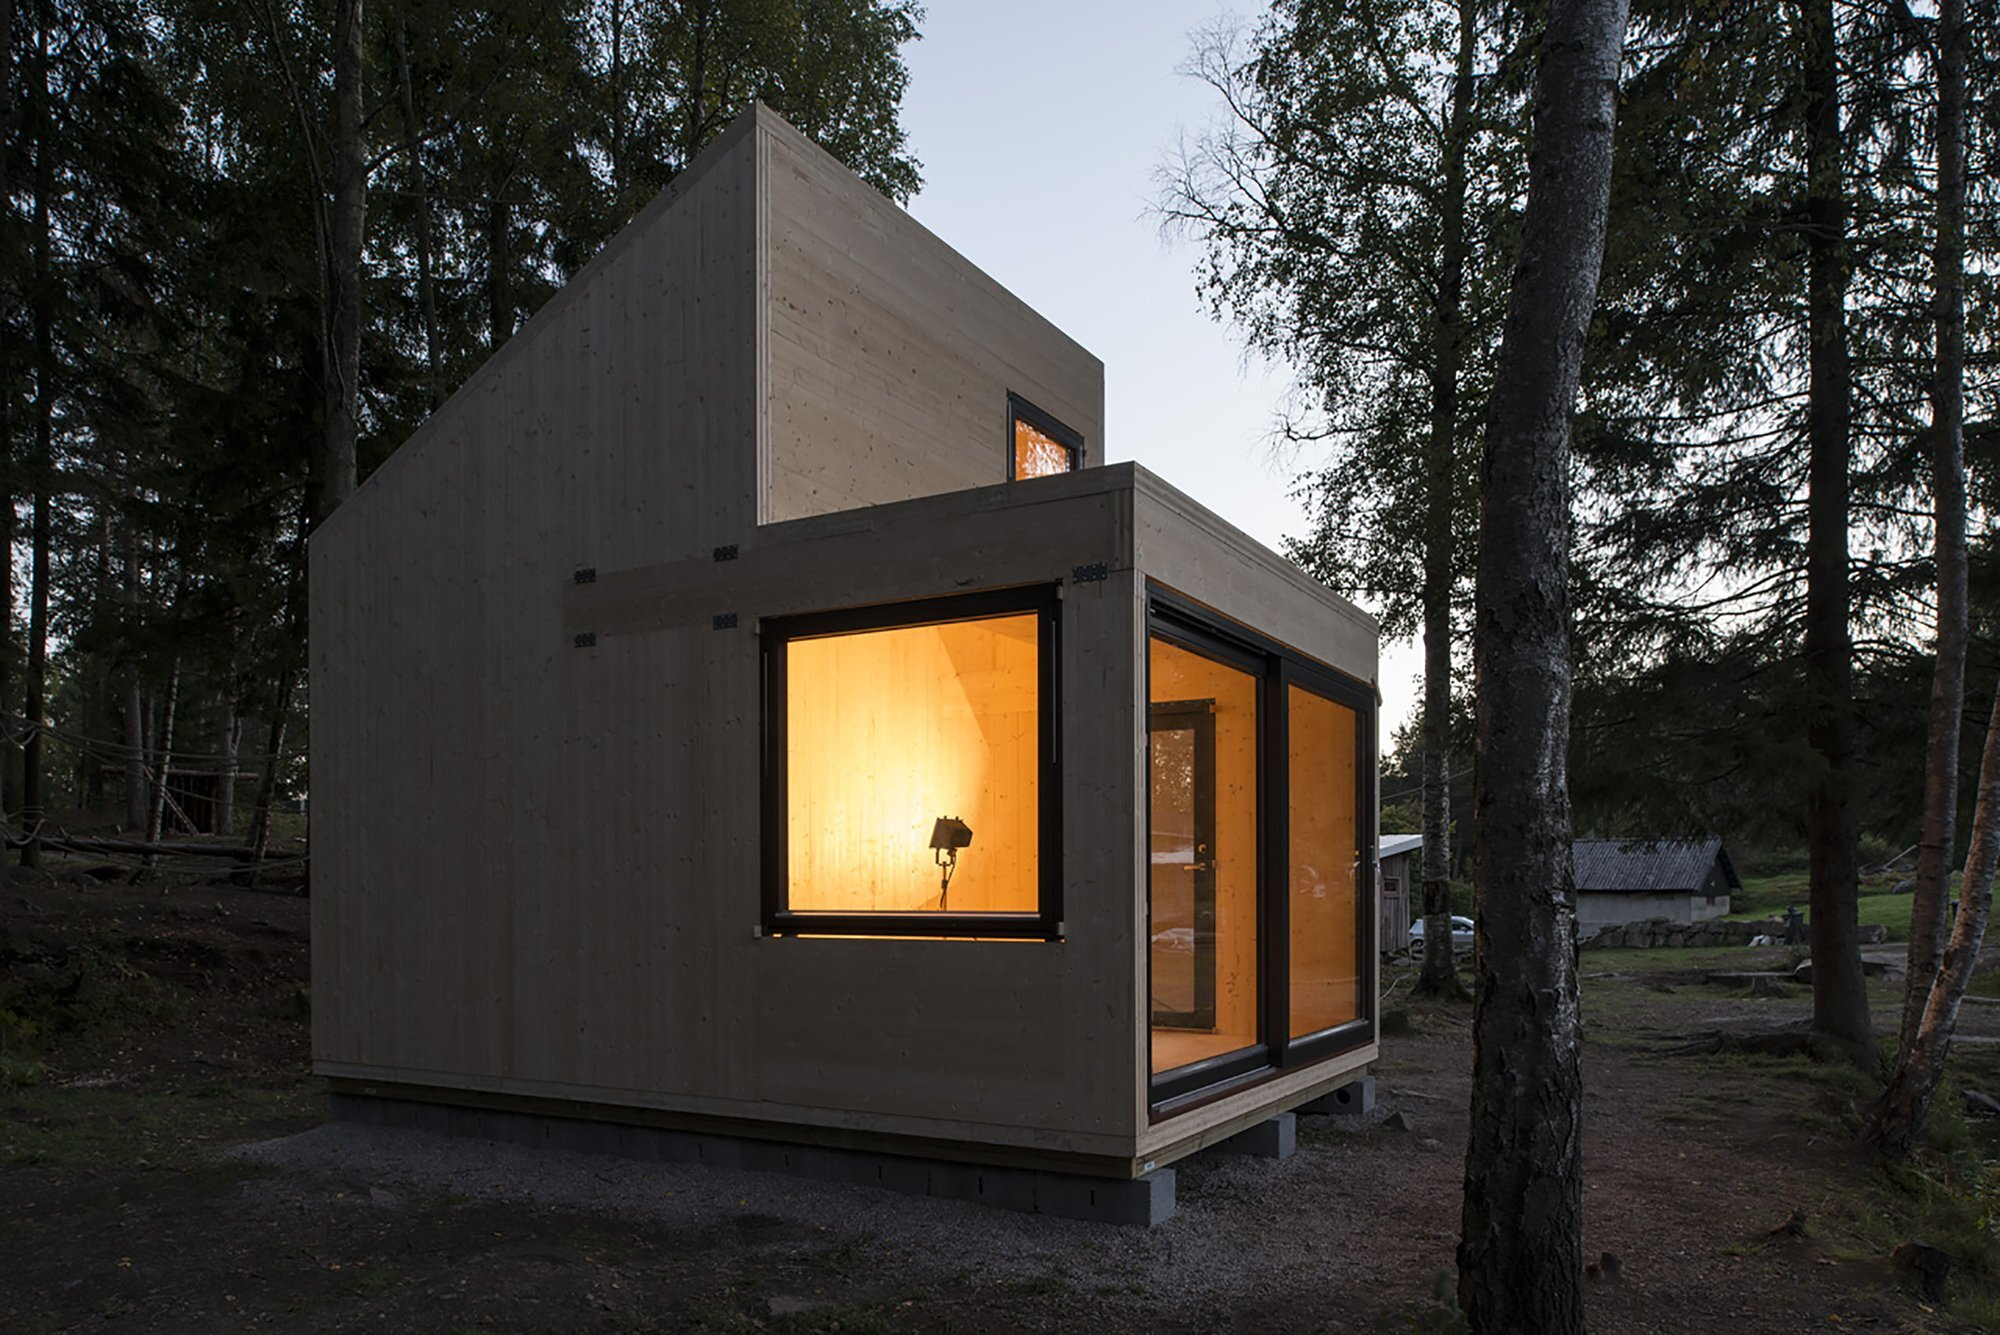 Woody15 - Marianne Borge - Norway - Exterior 4 - Humble Homes